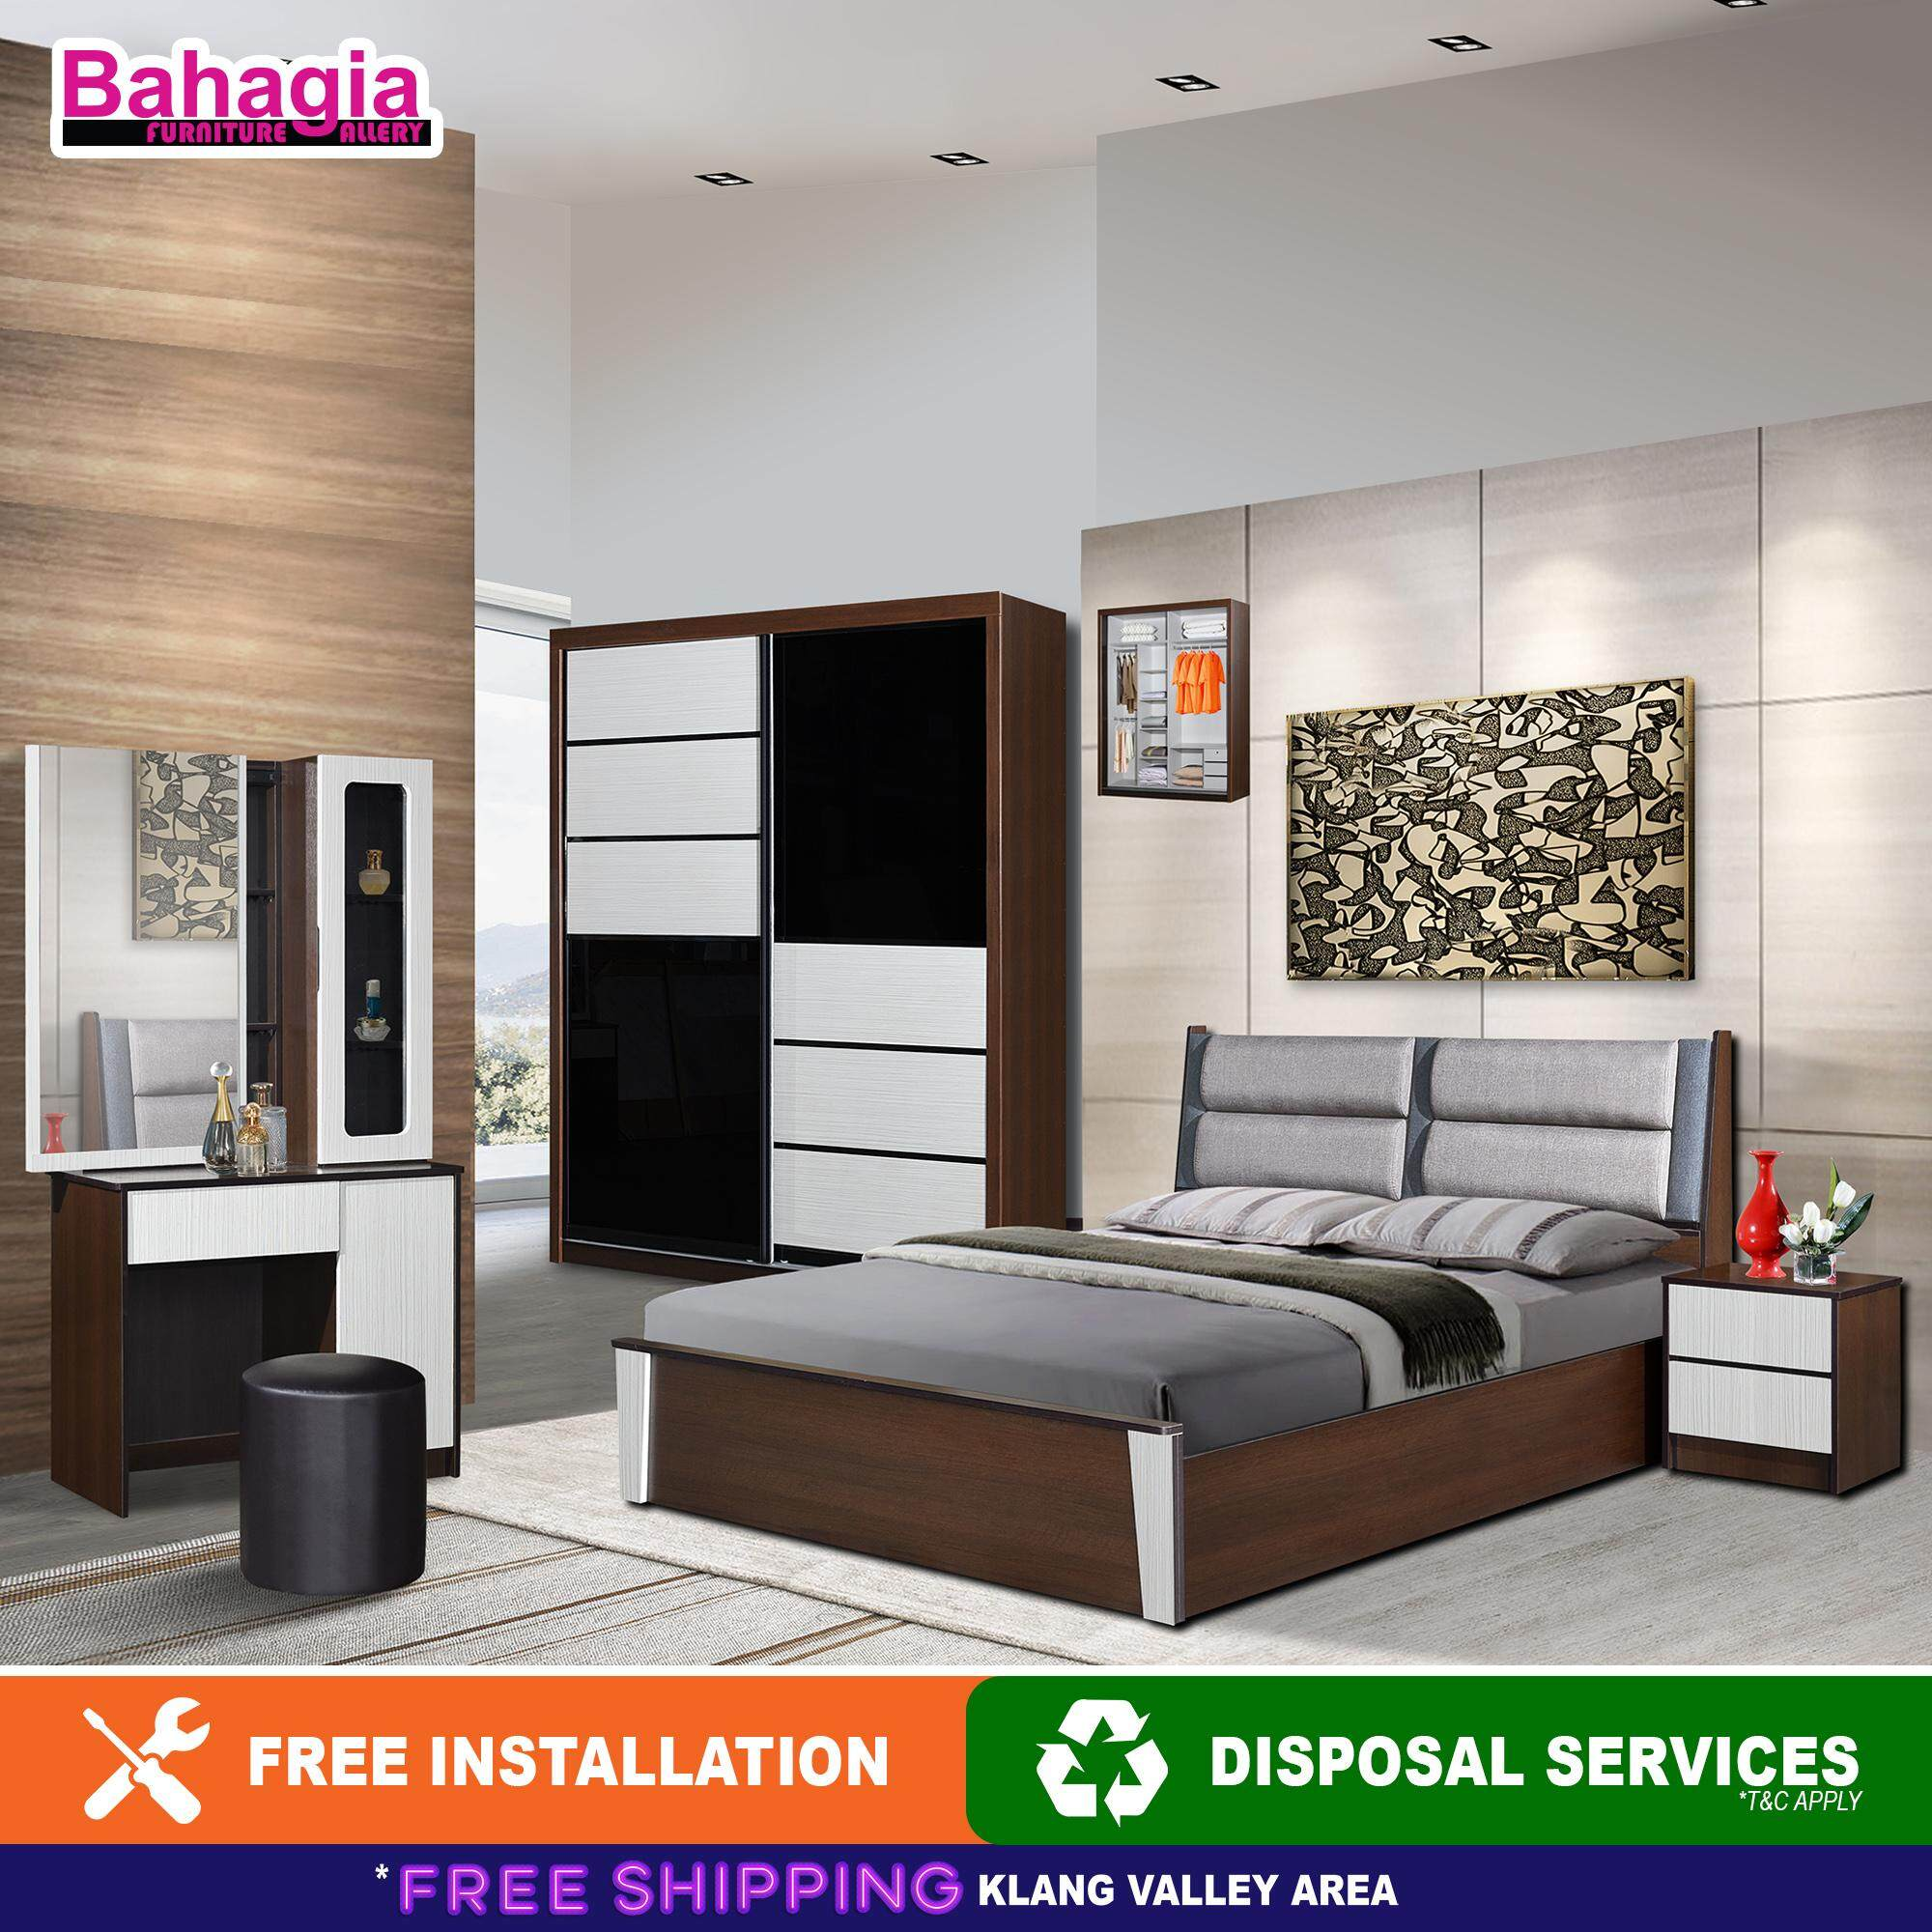 Bahagia Fusse Bedroom Set By Bahagia Furniture Gallery.